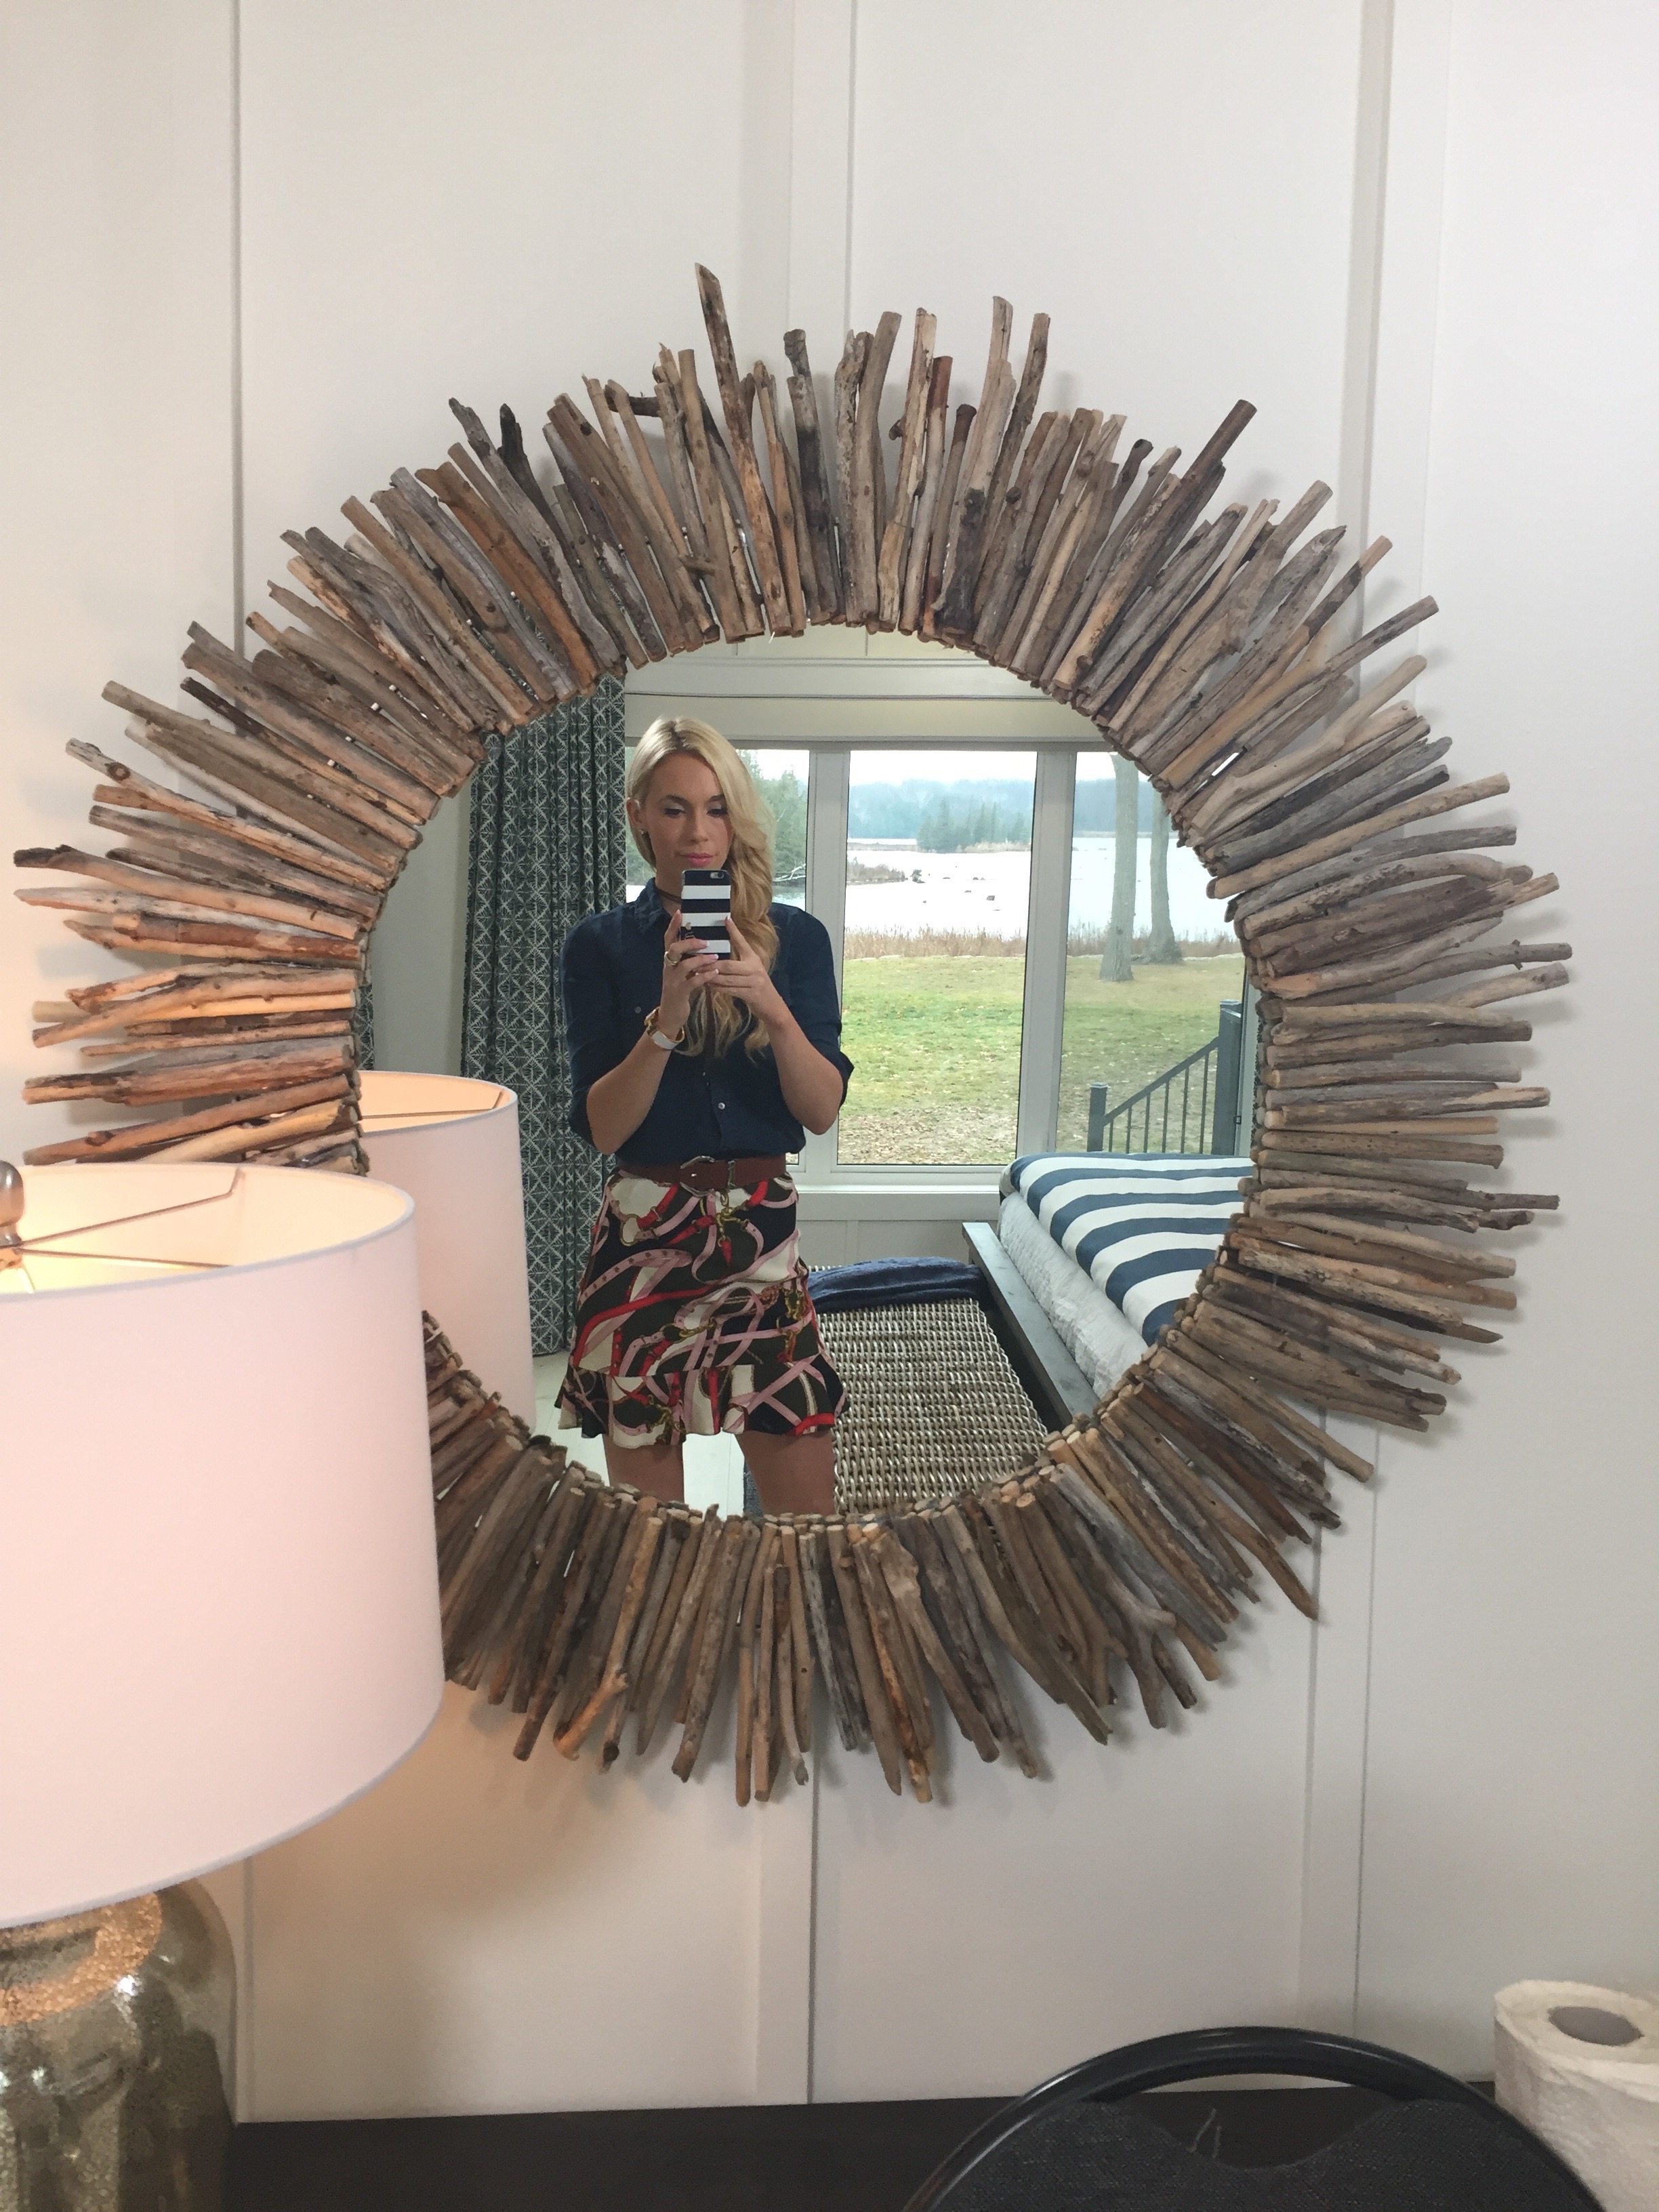 HGTV's Home To Win DIY Driftwood Mirror   Behind The Design : Check out Mia Parres' clever way to bring more texture into your lake-inspired room with an easy DIY project for  HGTV  and  Home To Win !